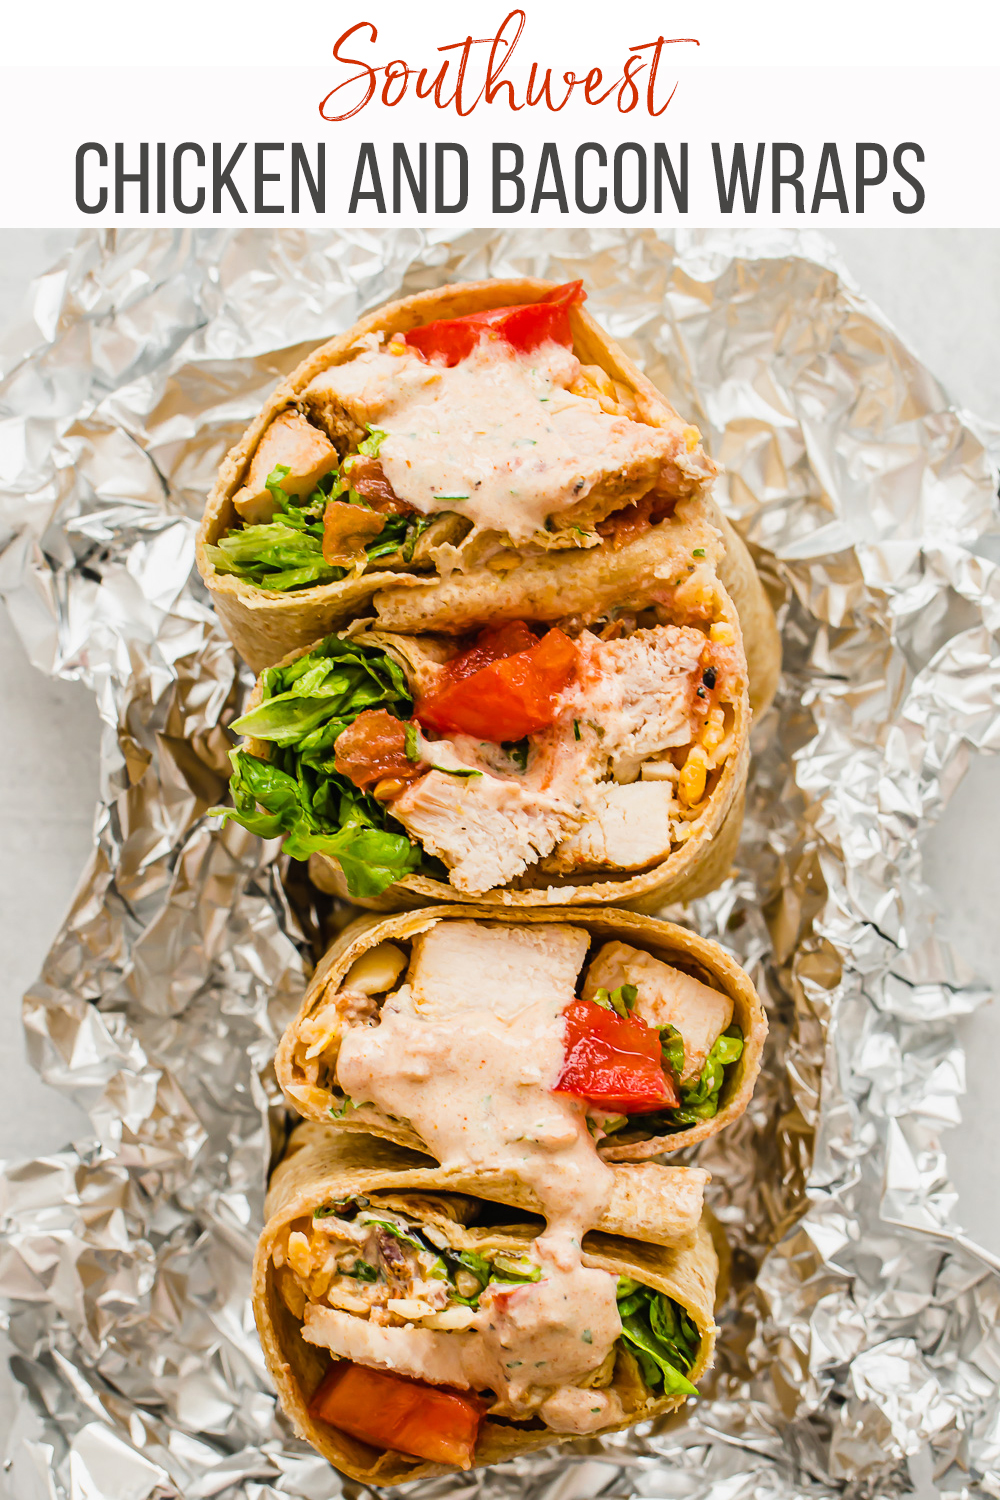 Southwest chicken and bacon wraps. Such a great, healthy dinner idea. I love serving this meal when we have people over because people can customize it. Also a great freezer meal! | Thriving Home #freezermeal